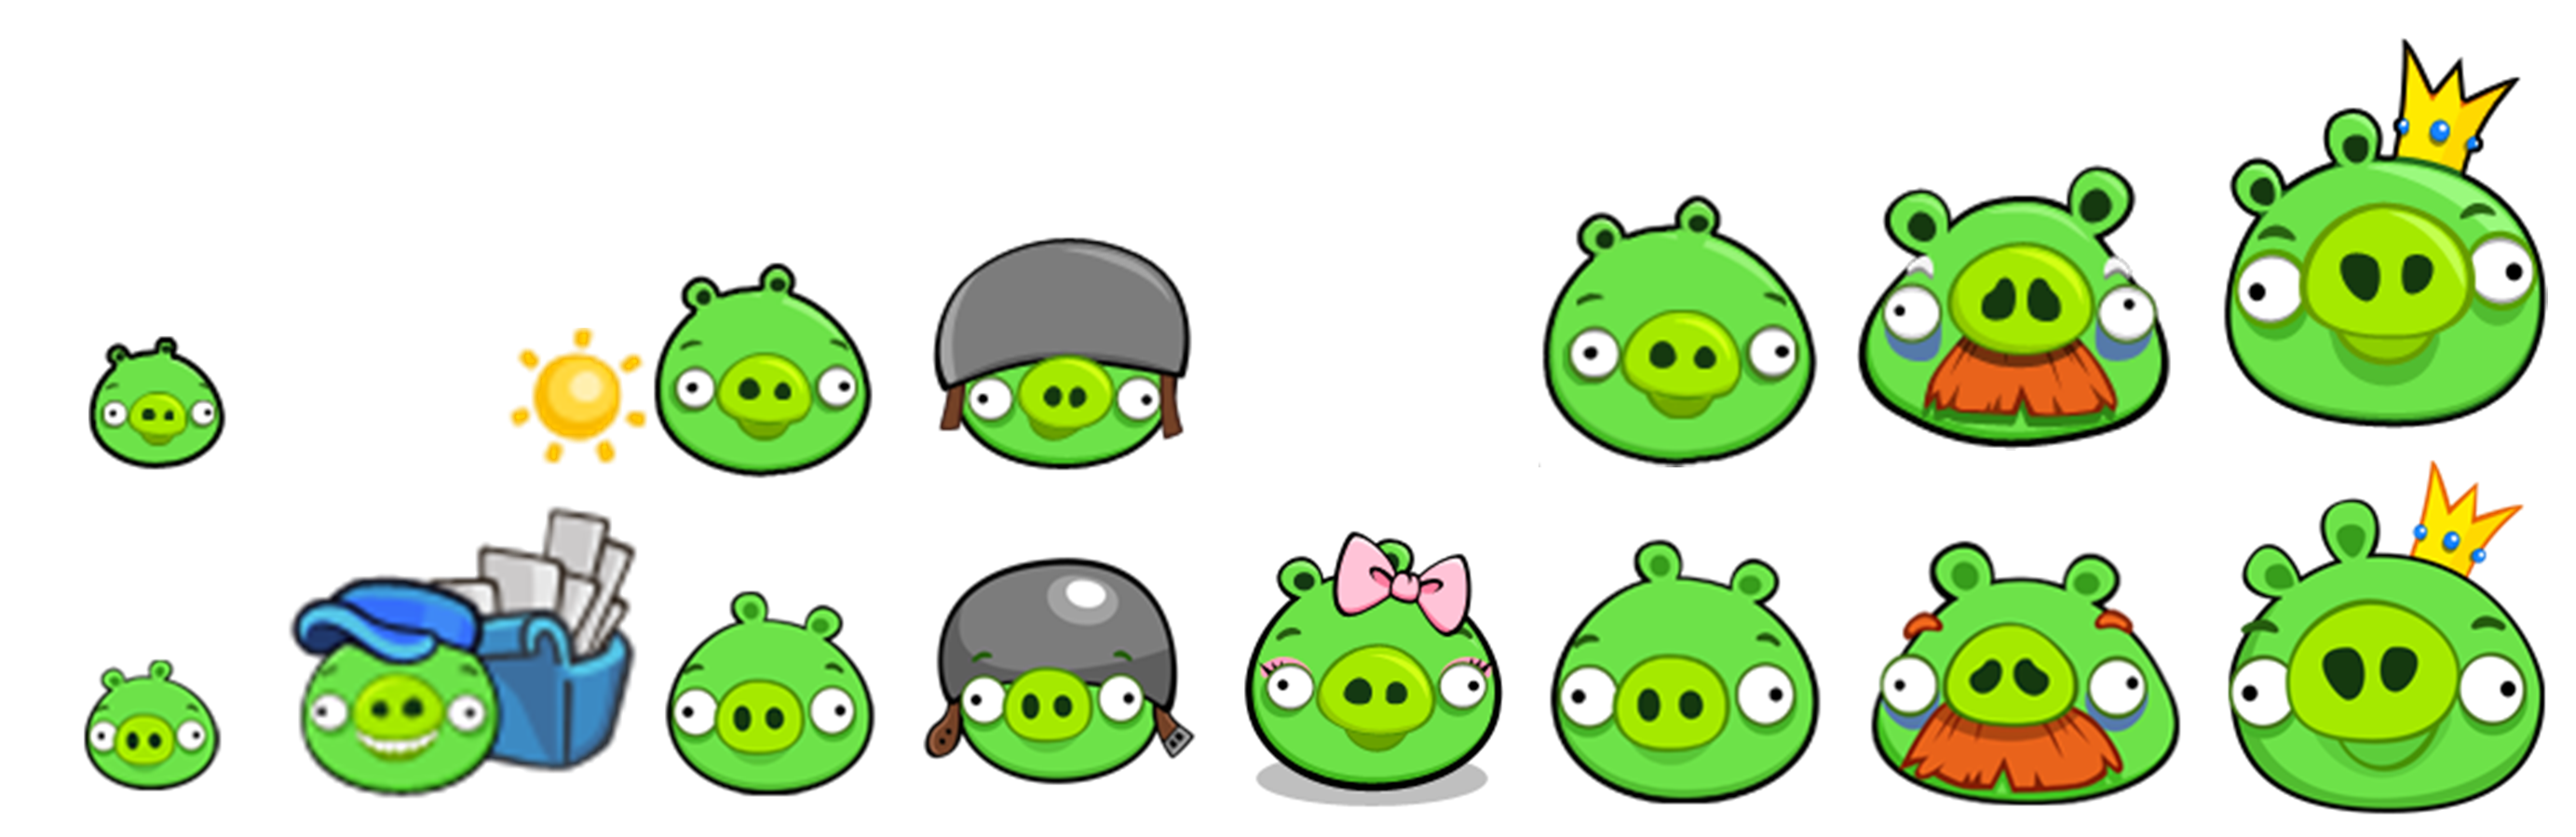 Pigs All Classic Modern Png 2 766 899 Pixels Angry Birds Pigs Angry Birds Pig